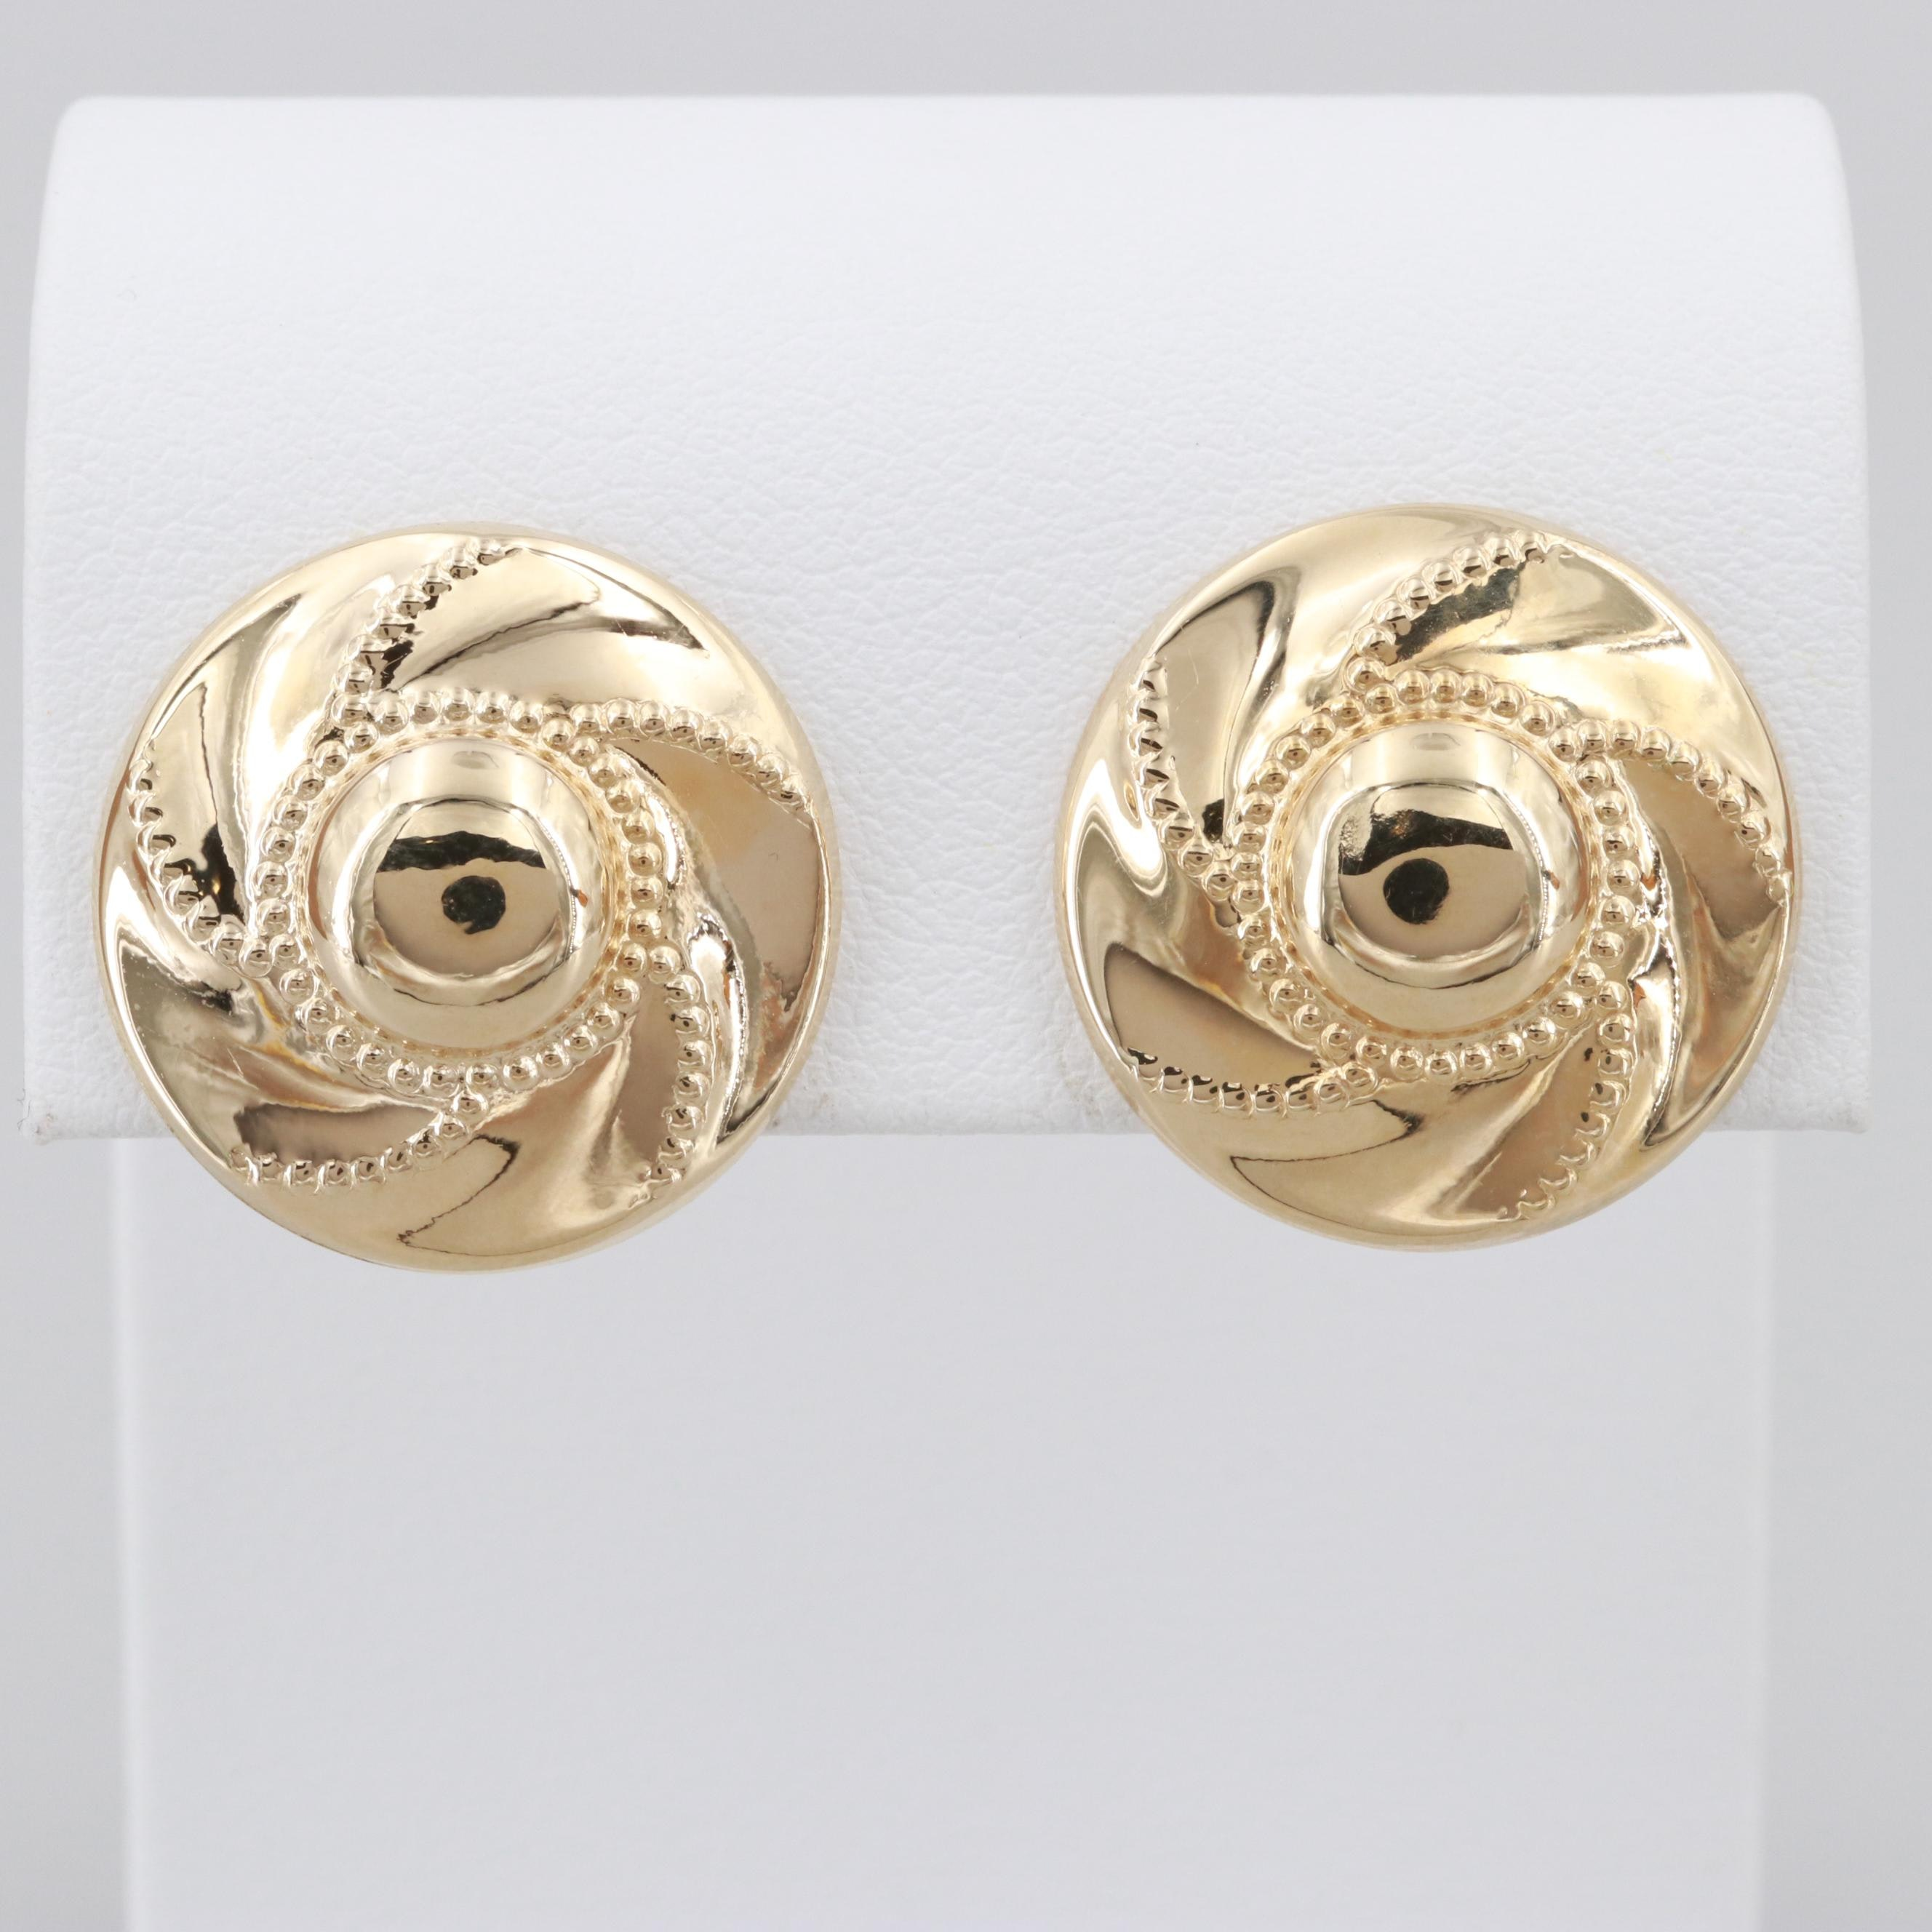 14K Yellow Gold Earrings with Milgrain Detailing